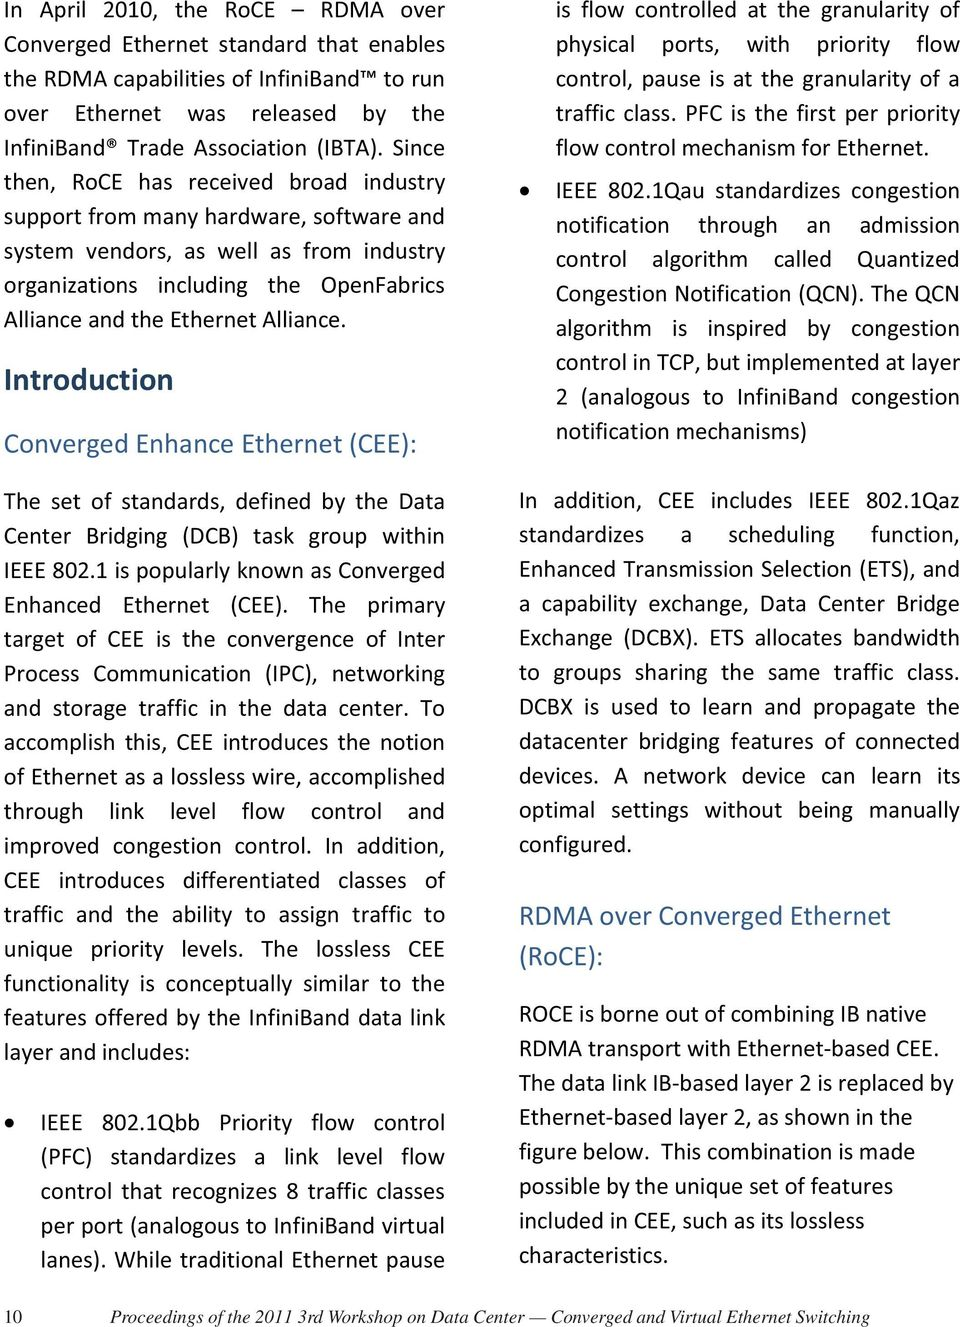 Performance Evaluation of the RDMA over Ethernet (RoCE) Standard in